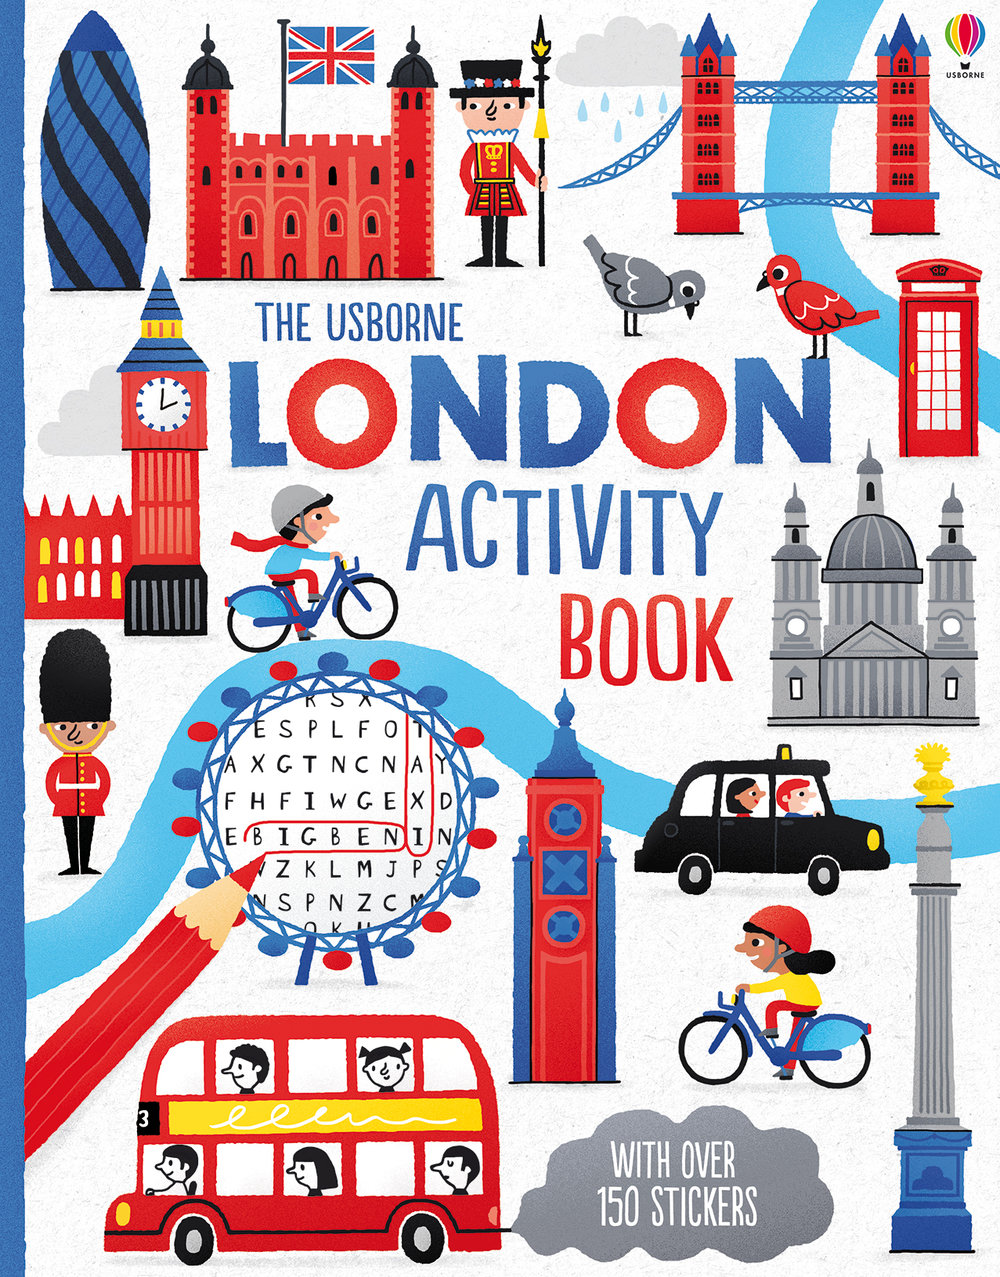 London Activity Book low res.jpg